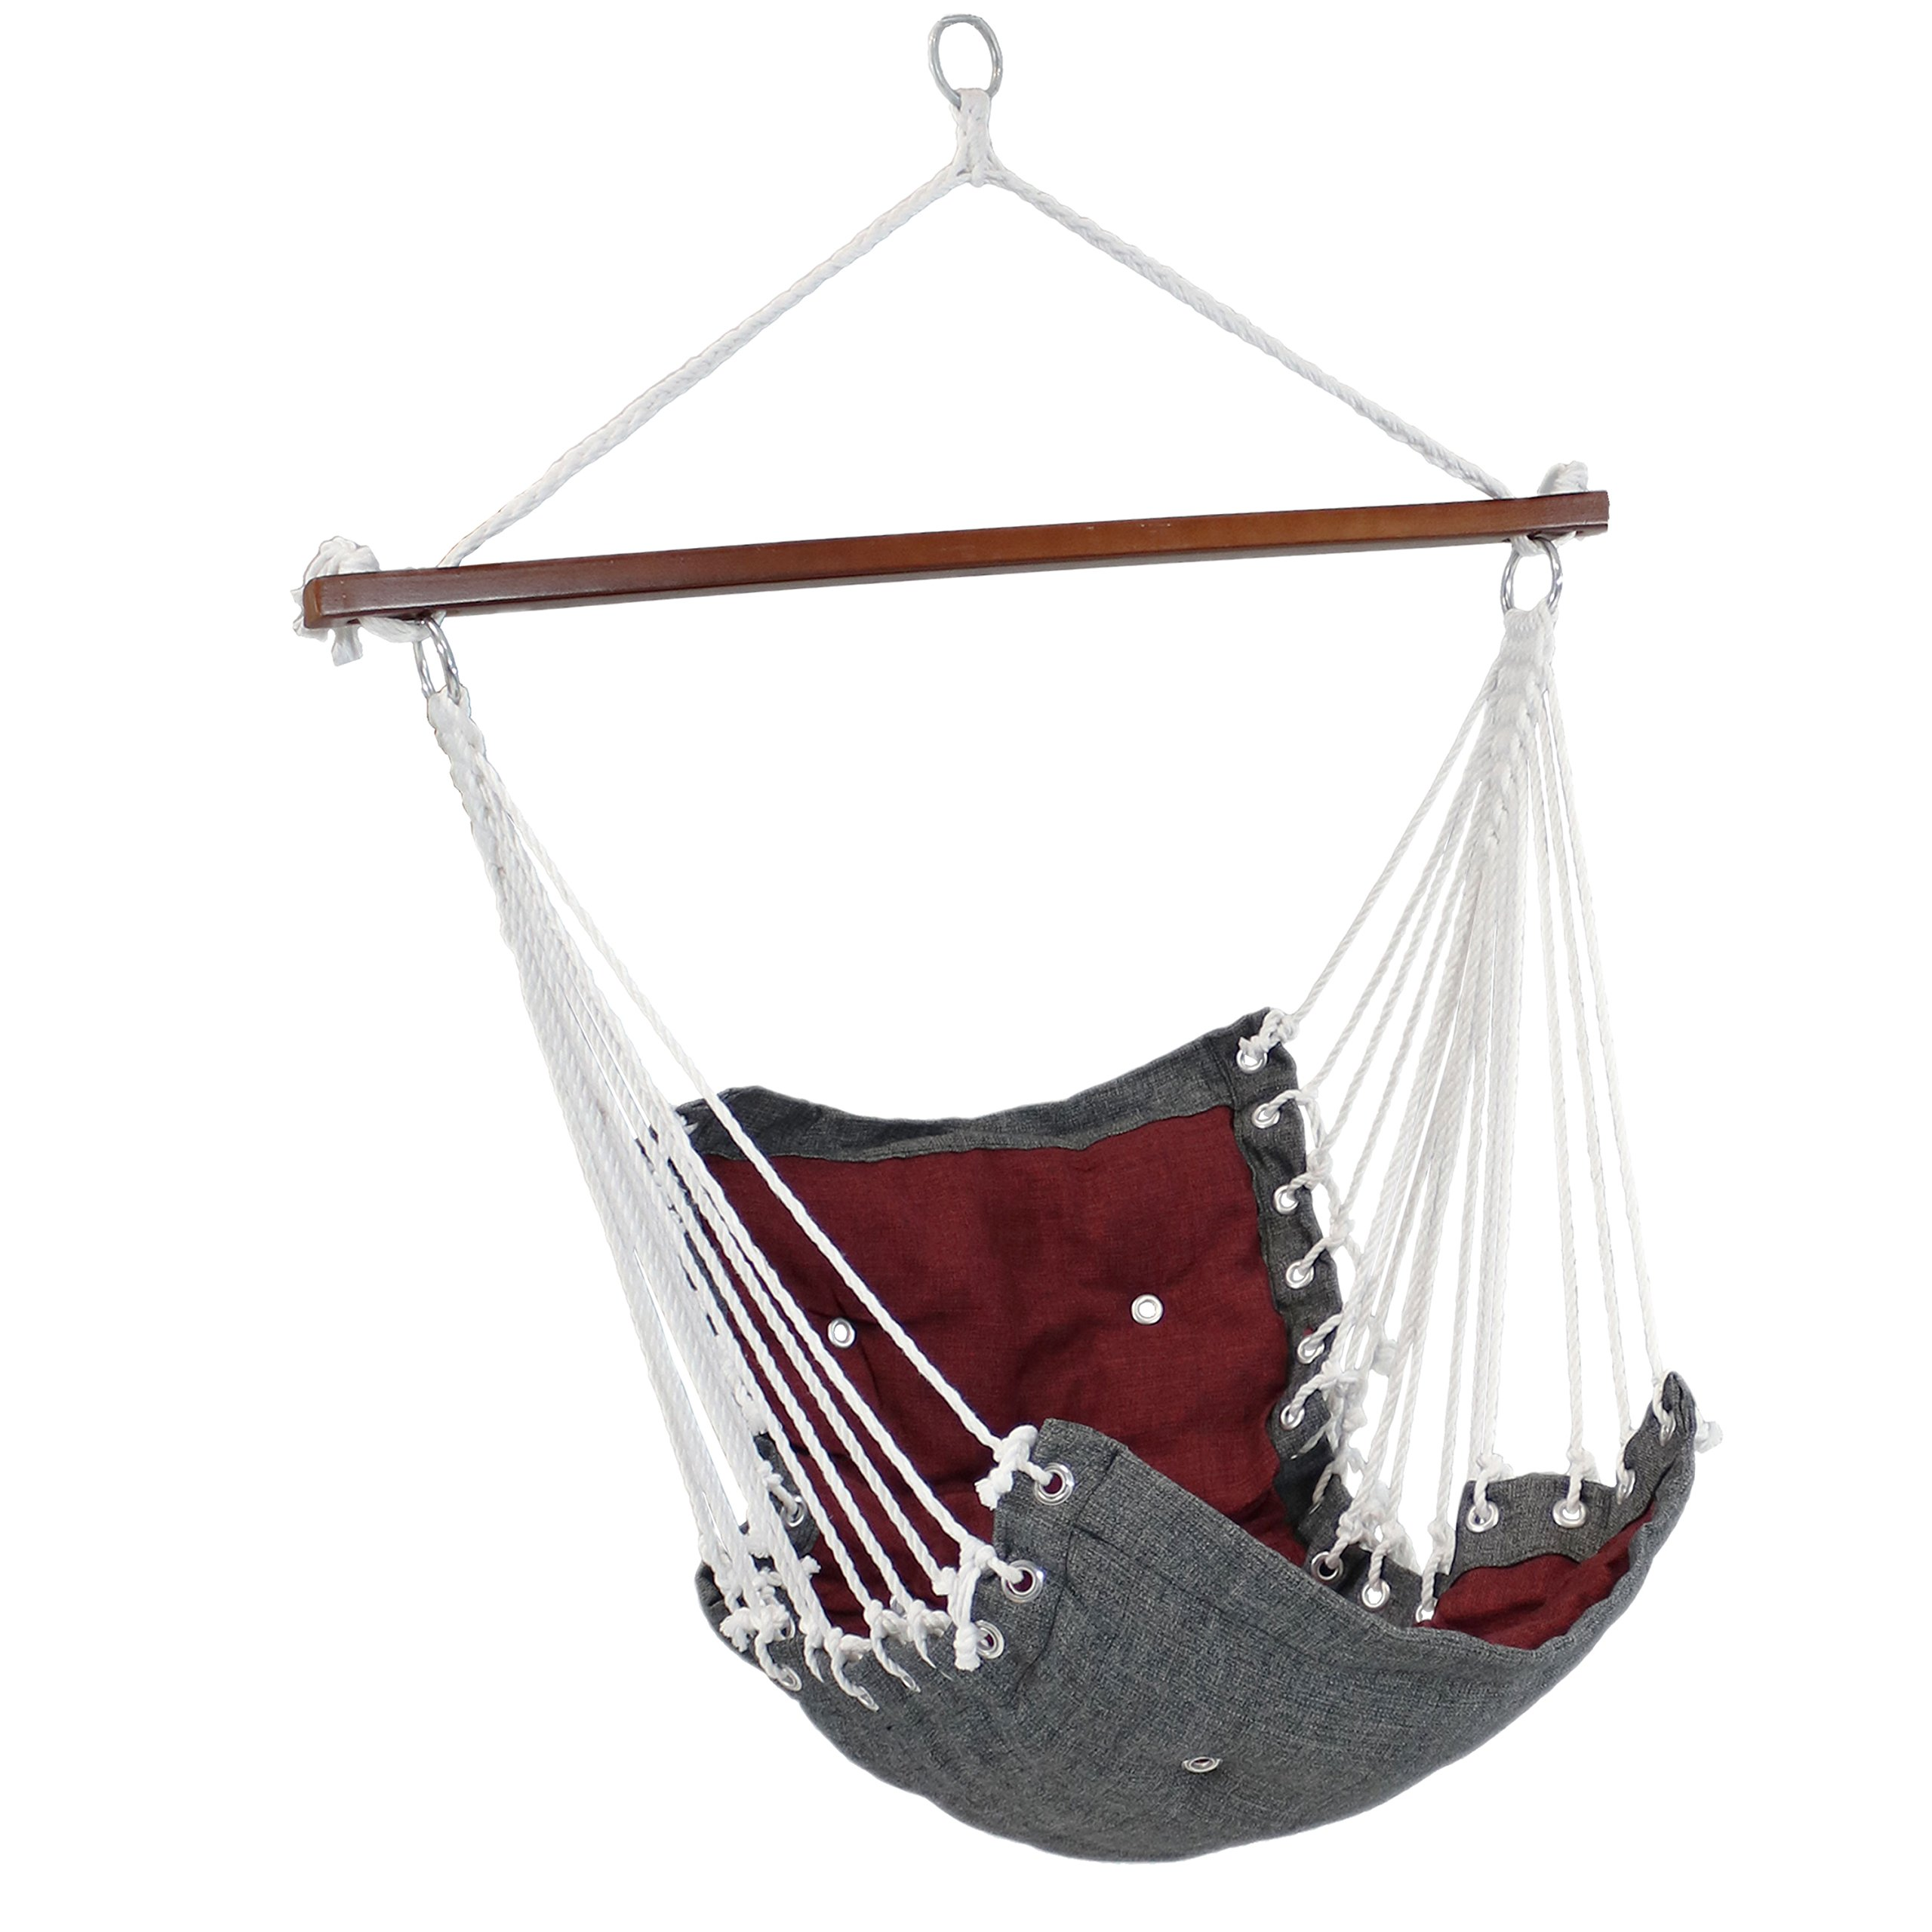 Sunnydaze Tufted Victorian Hammock Chair Swing, Indoor or Outdoor Hanging Seat, Sturdy 300 Pound Weight Capacity, Red